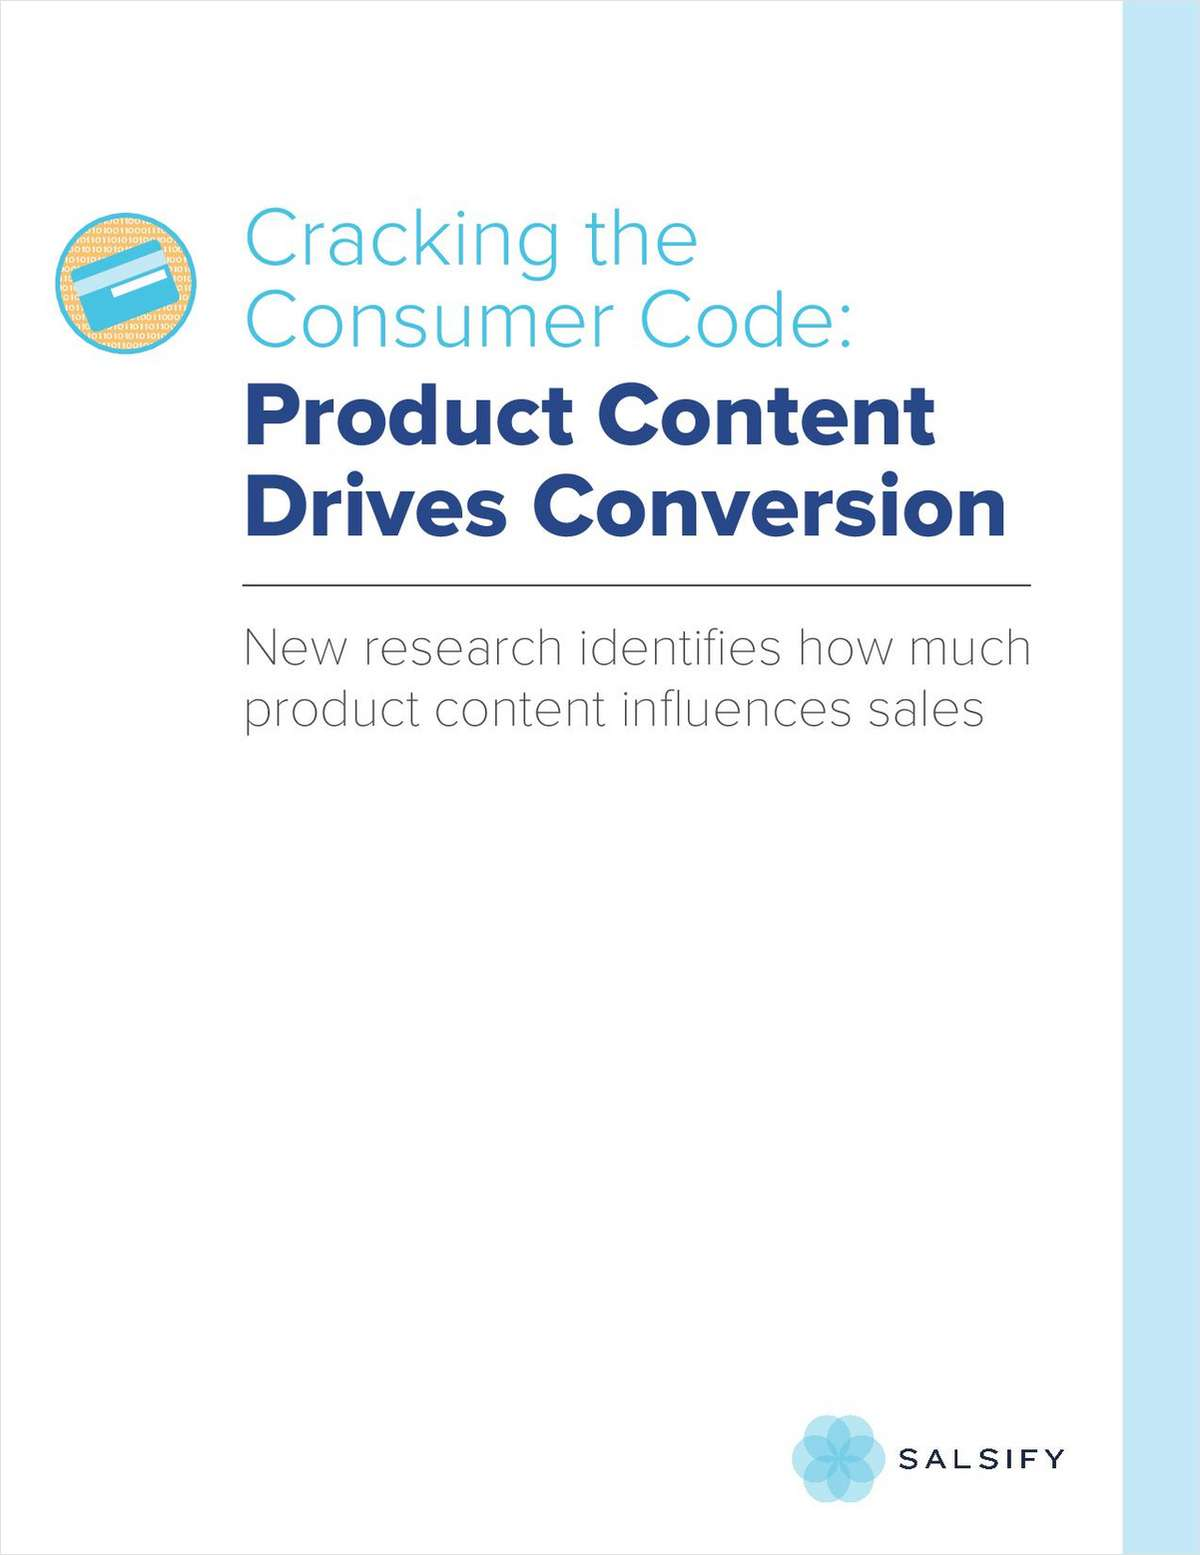 Cracking the Consumer Code: Product Content Drives Conversion